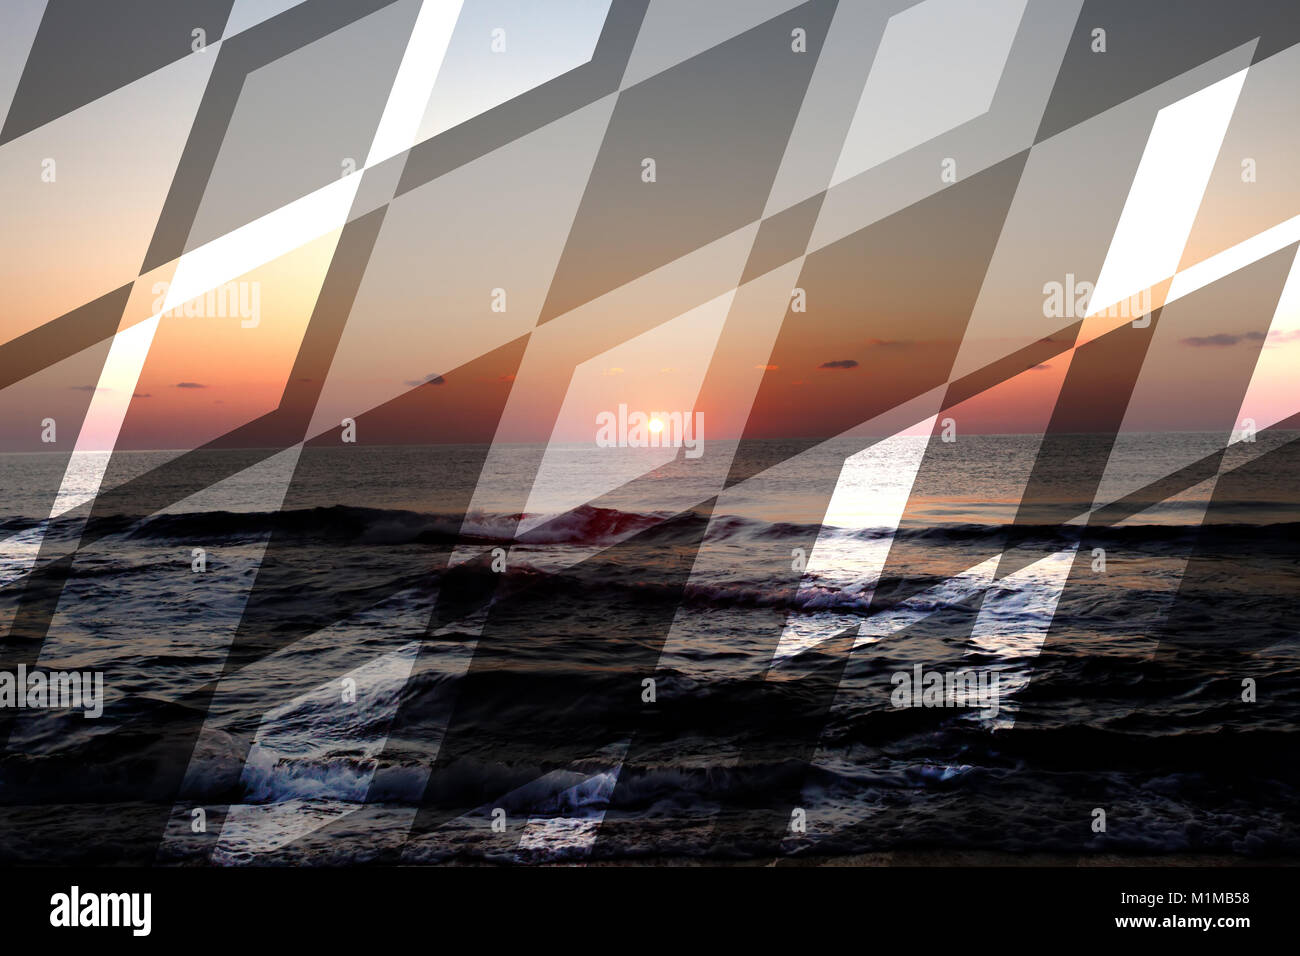 abstract sea geometric background with rocks and water waves, sunrise time with ricing sun , filter colored - Stock Image